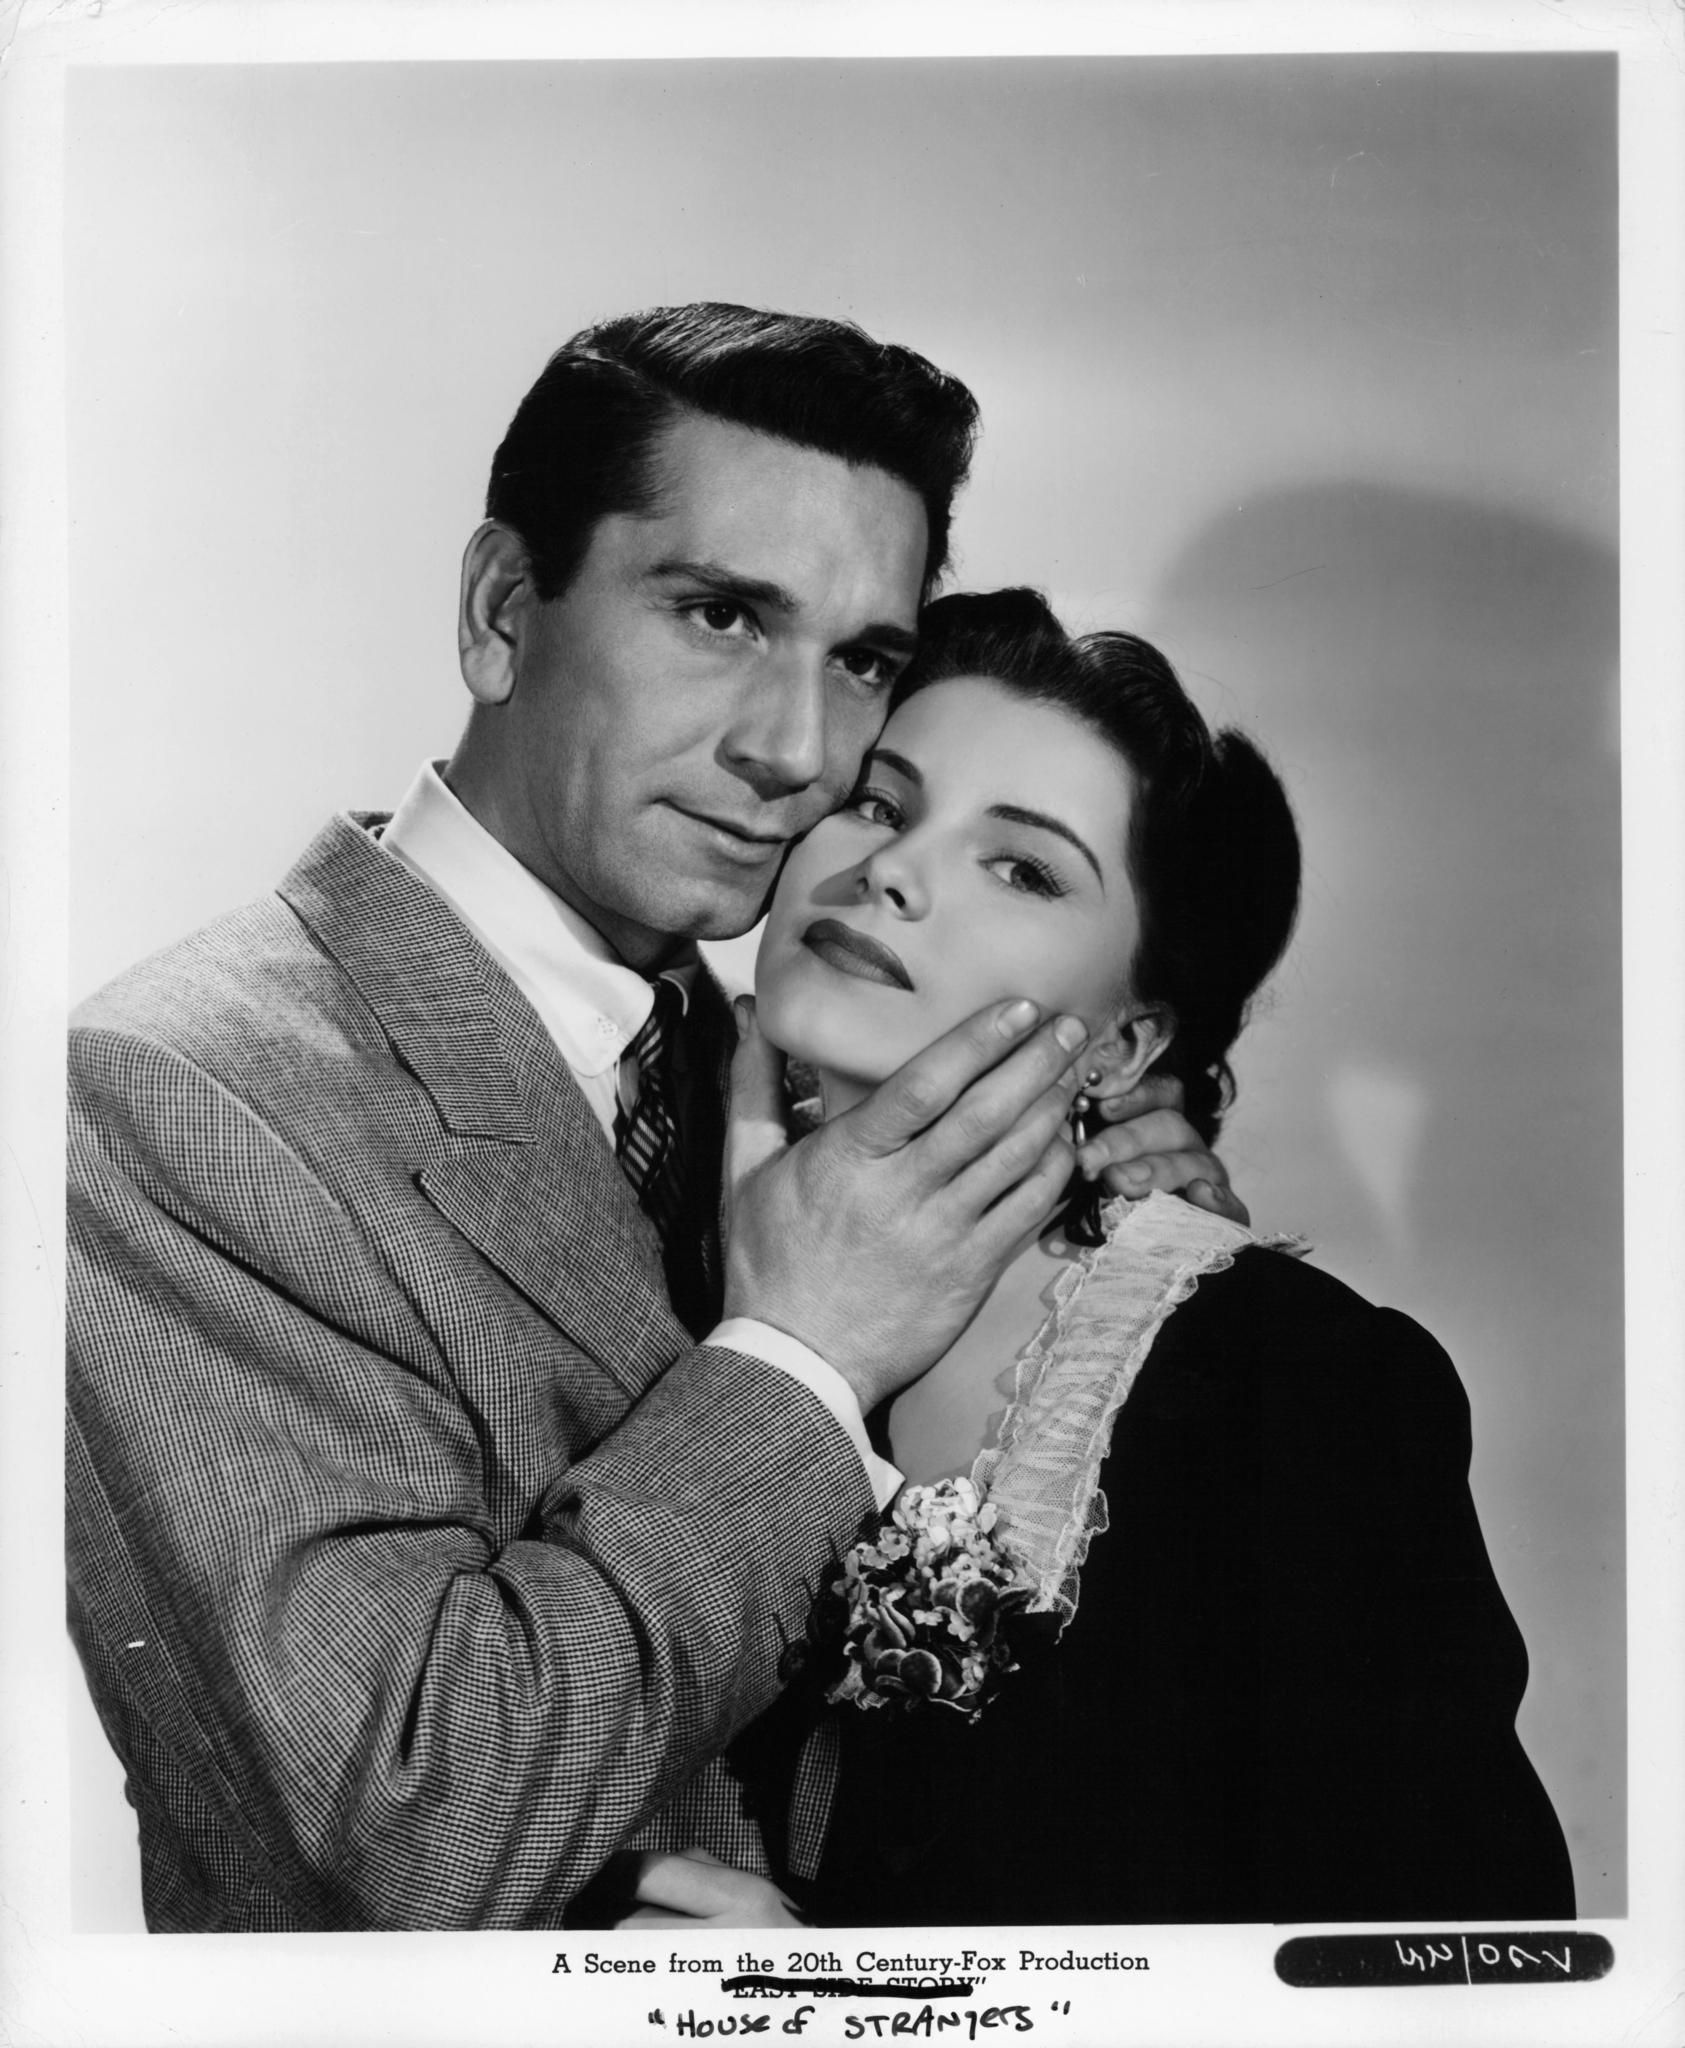 House Of Strangers 1949 Richard Conte Paget Turner Classic Movies